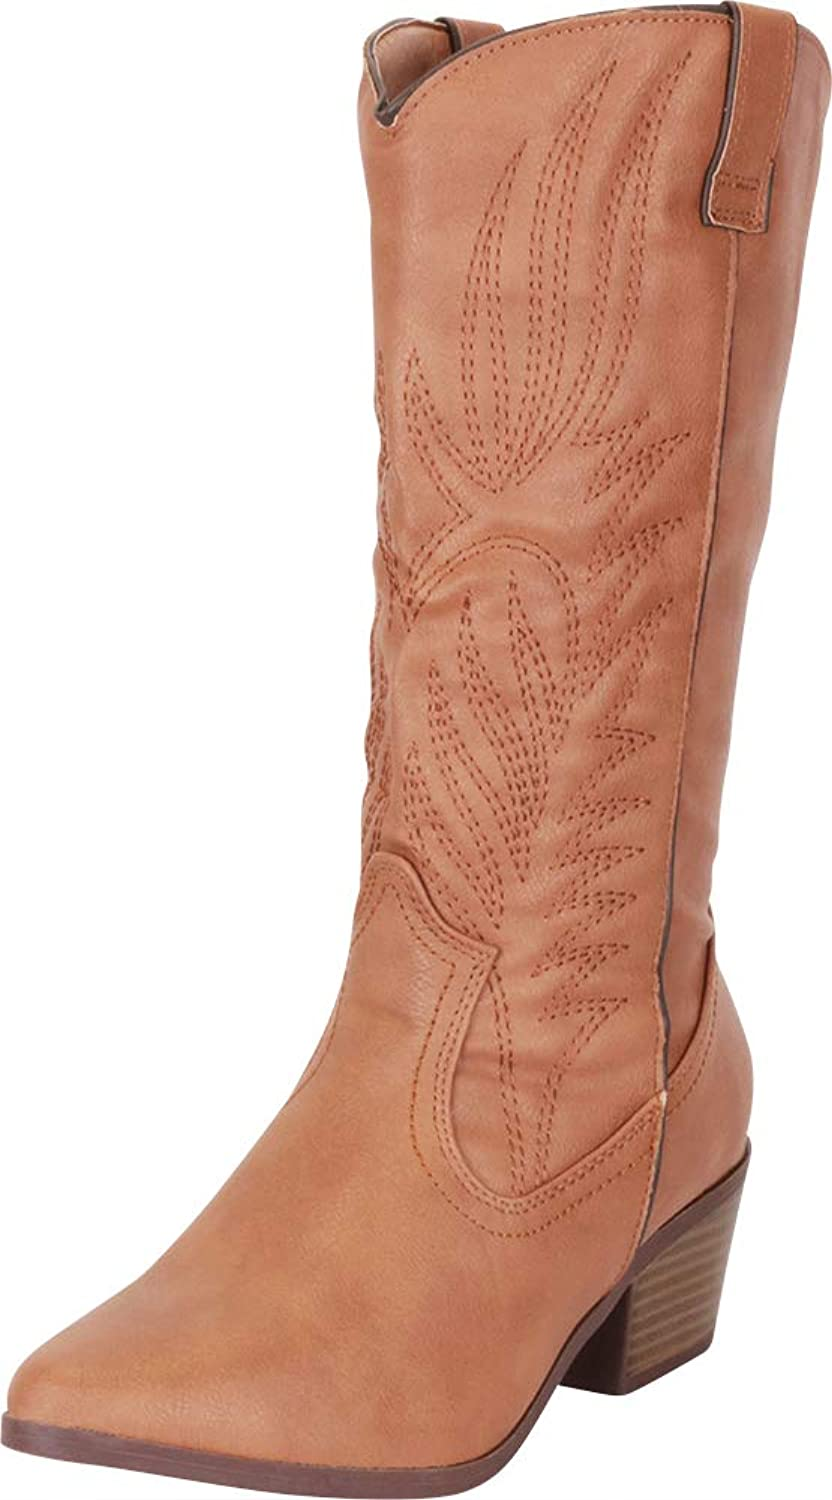 Cambridge Select Women's Western Pointed Toe Embroidered Stitched Stacked Heel Mid-Calf Cowboy Boot